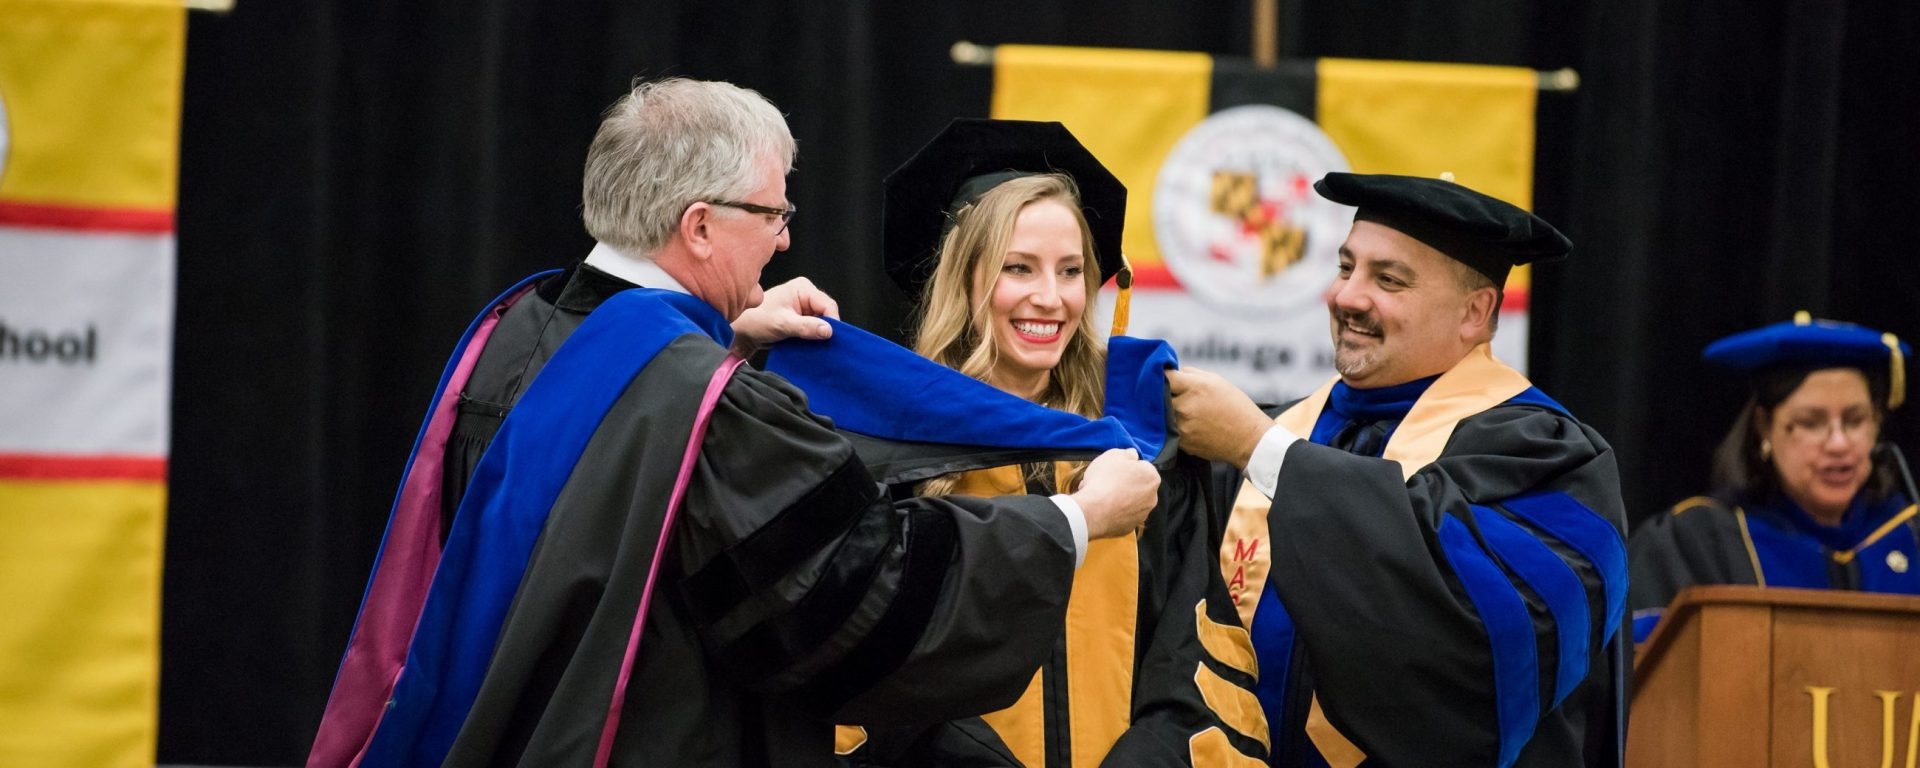 Student receives her PhD in hooding ceremony with faculty member and provost